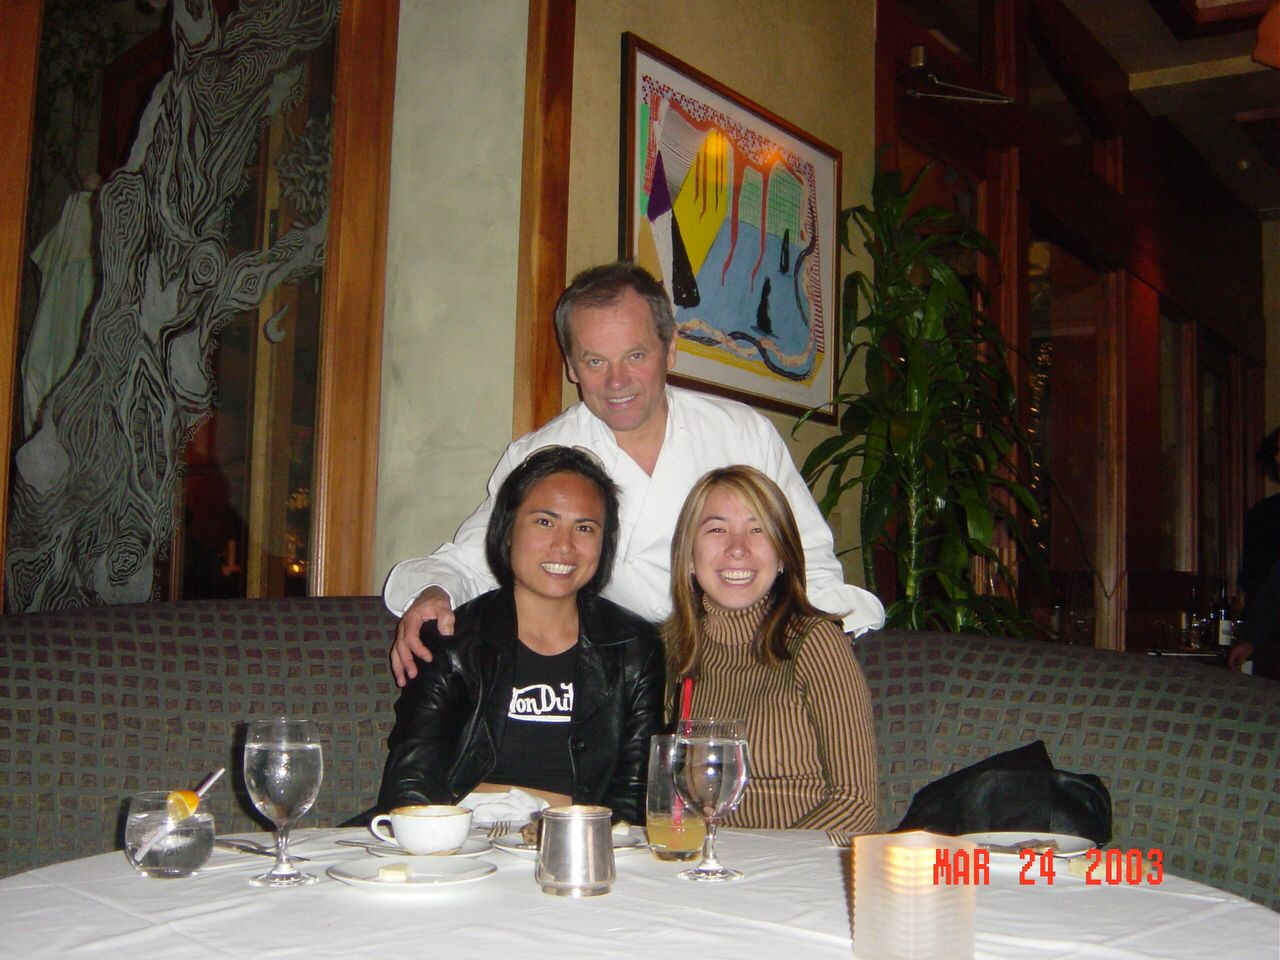 Spago with Wolfgang Puck